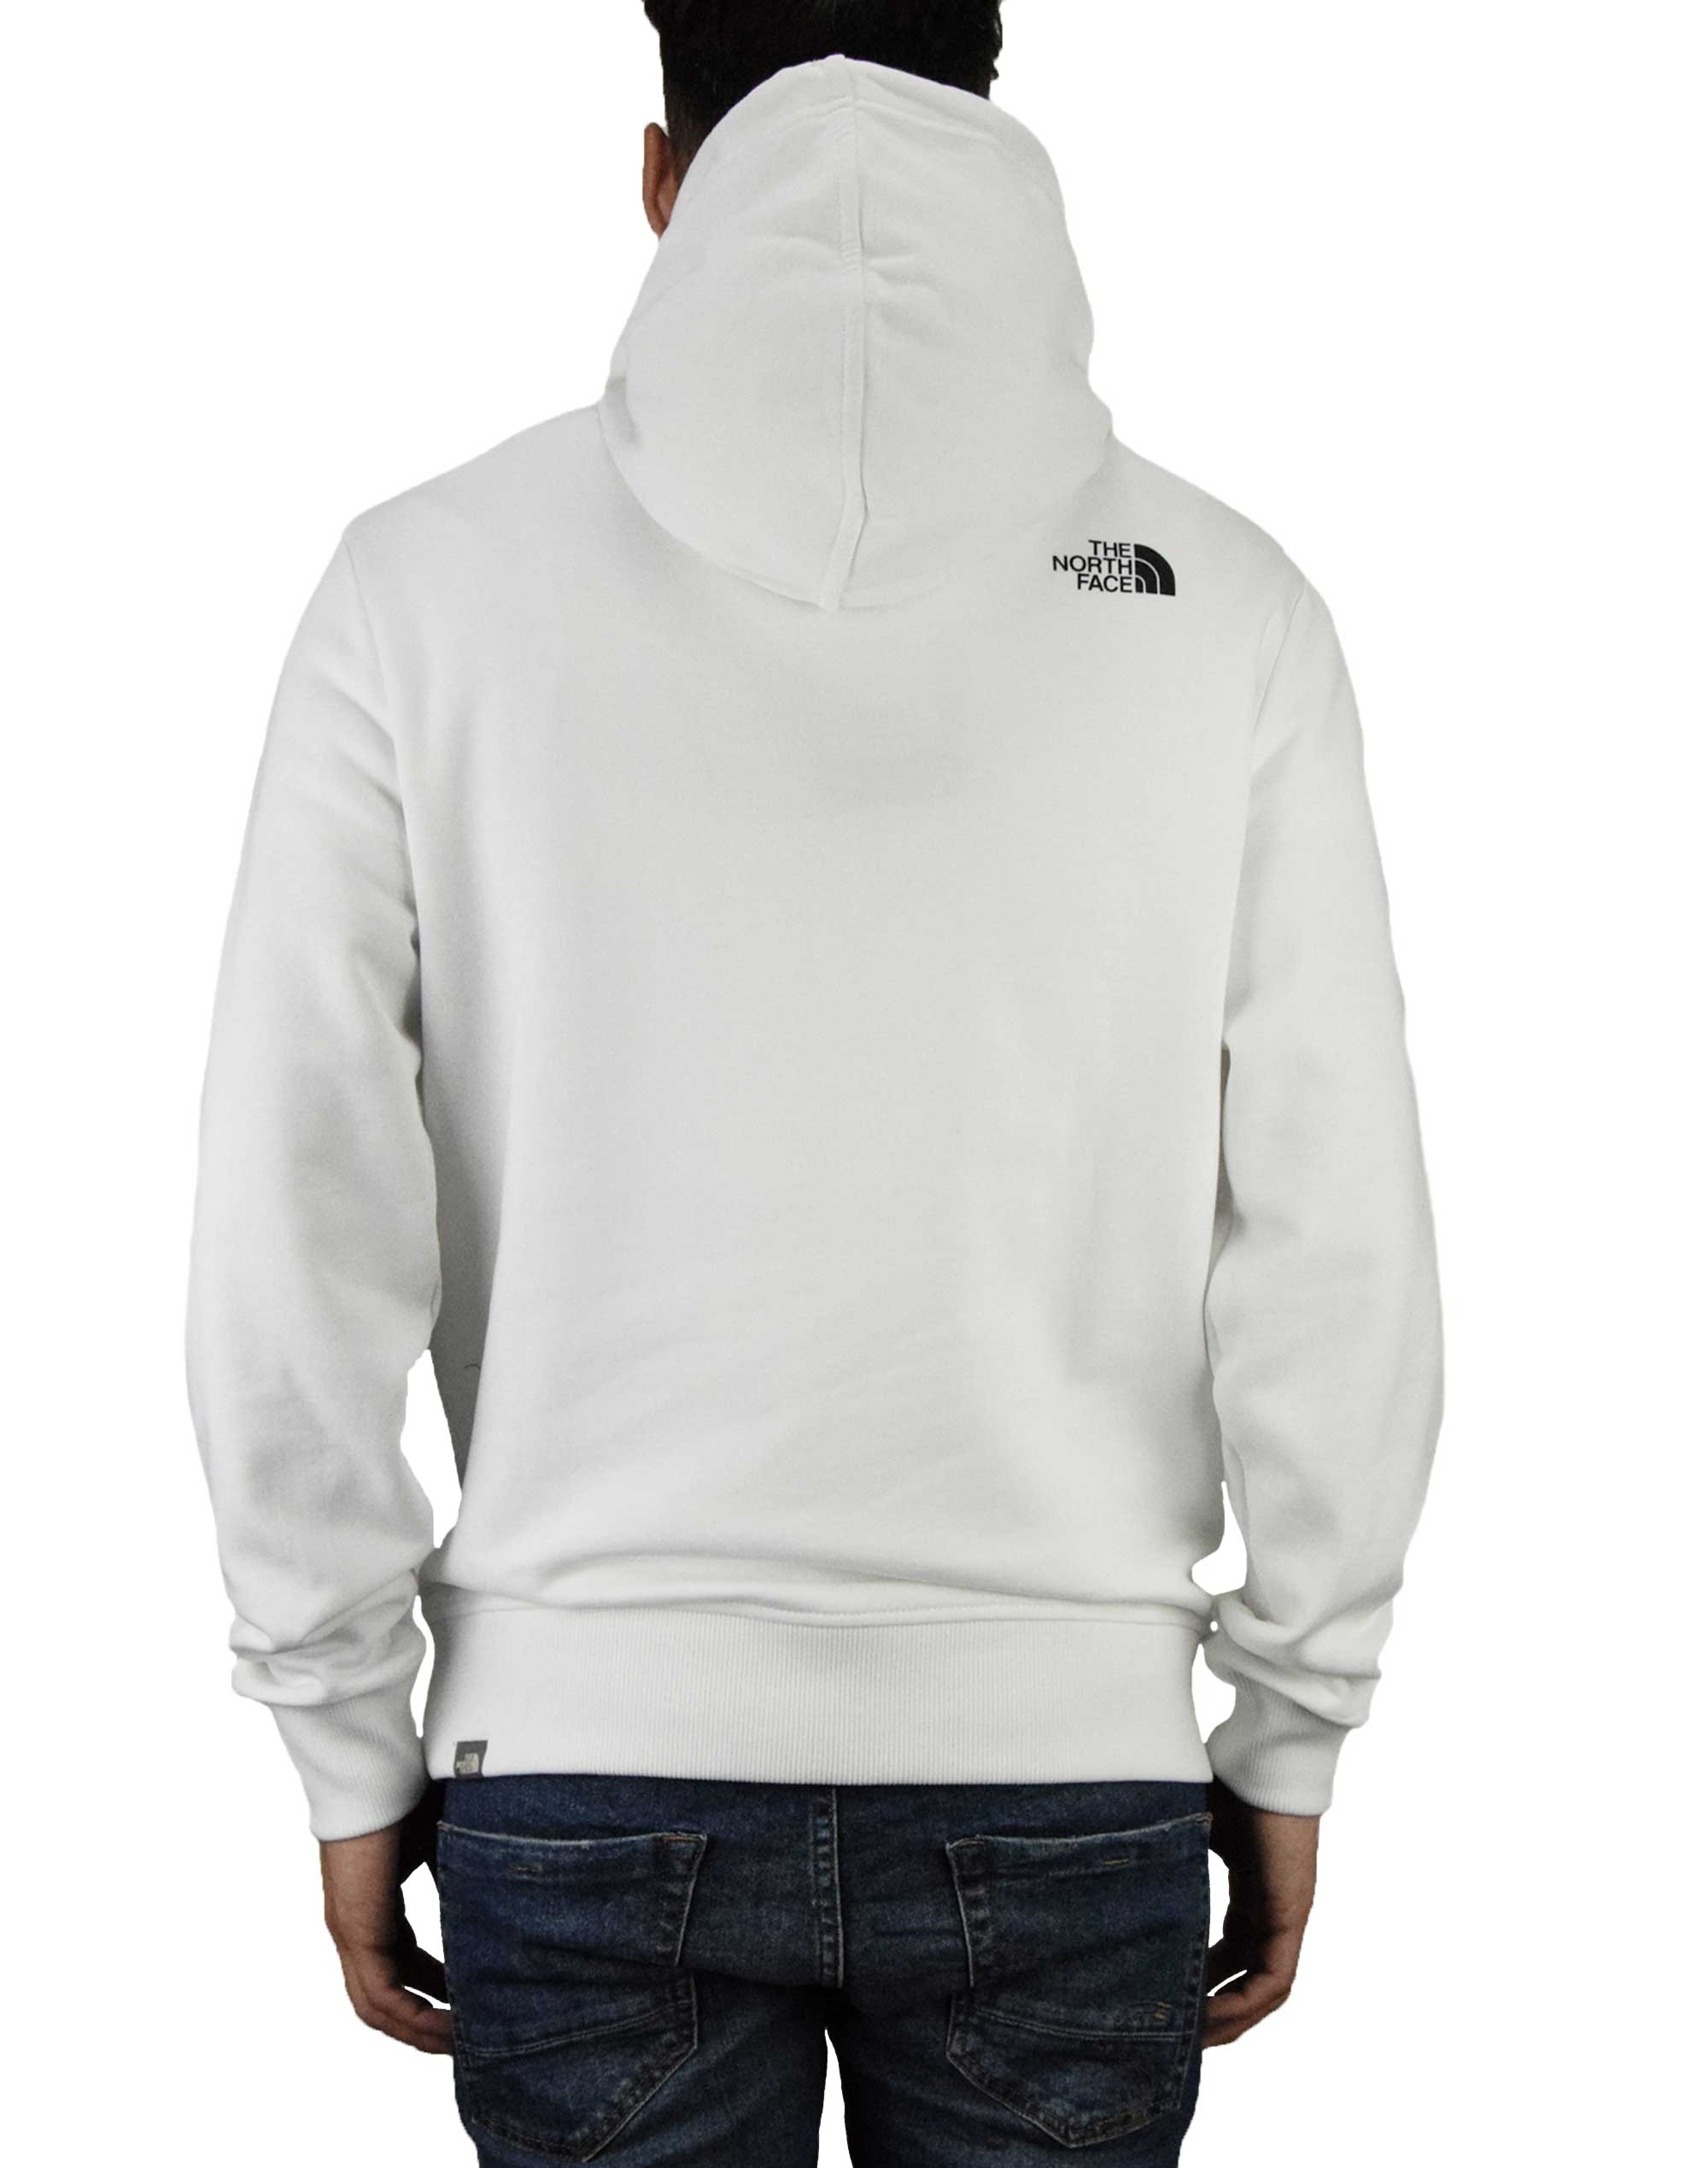 The North Face Standard Hoodie (NF0A3XYDFN41) White